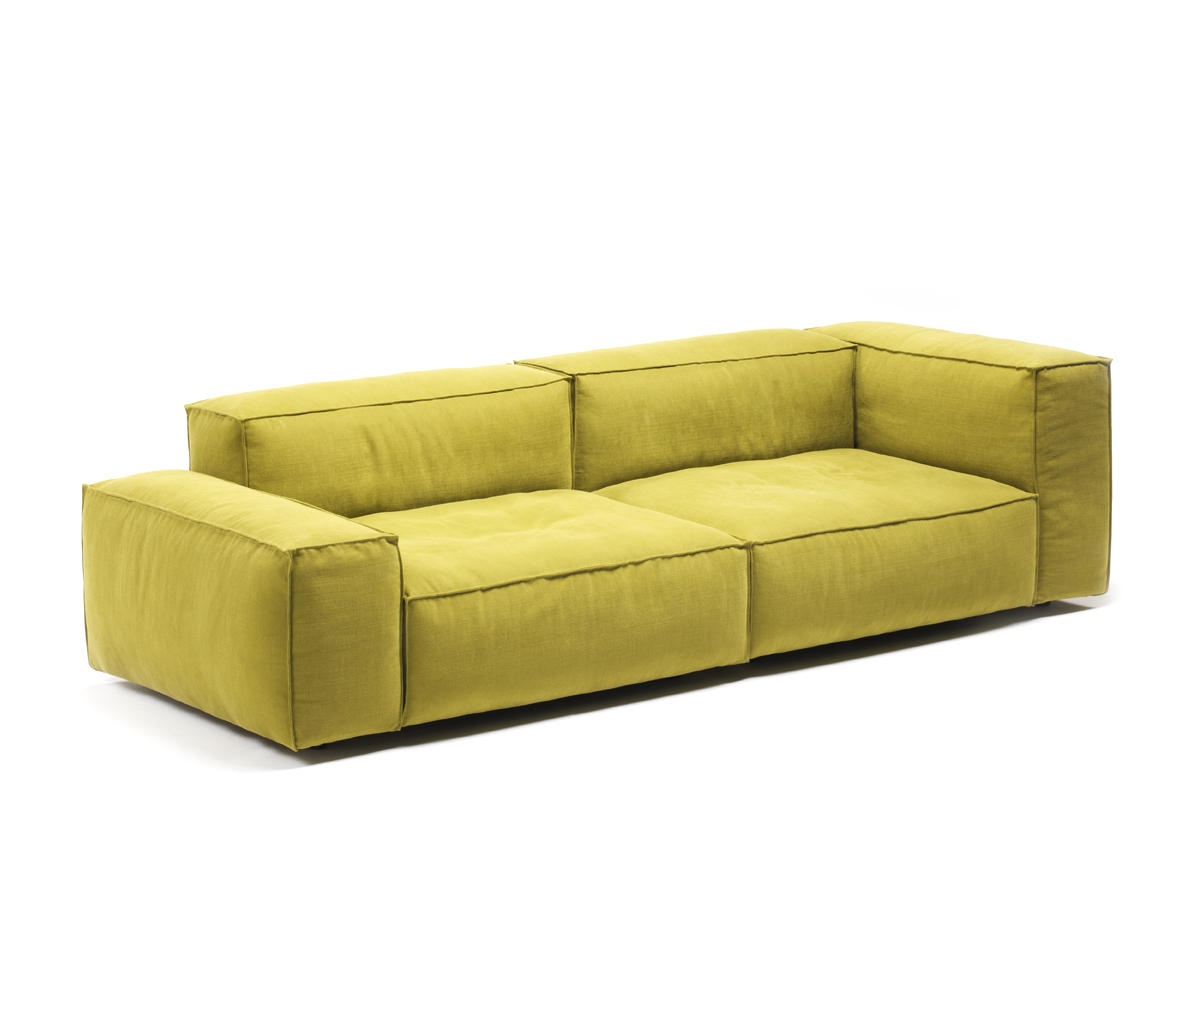 Living Divani Neowall Sofa Bed Neowall Sofas From Living Divani Architonic